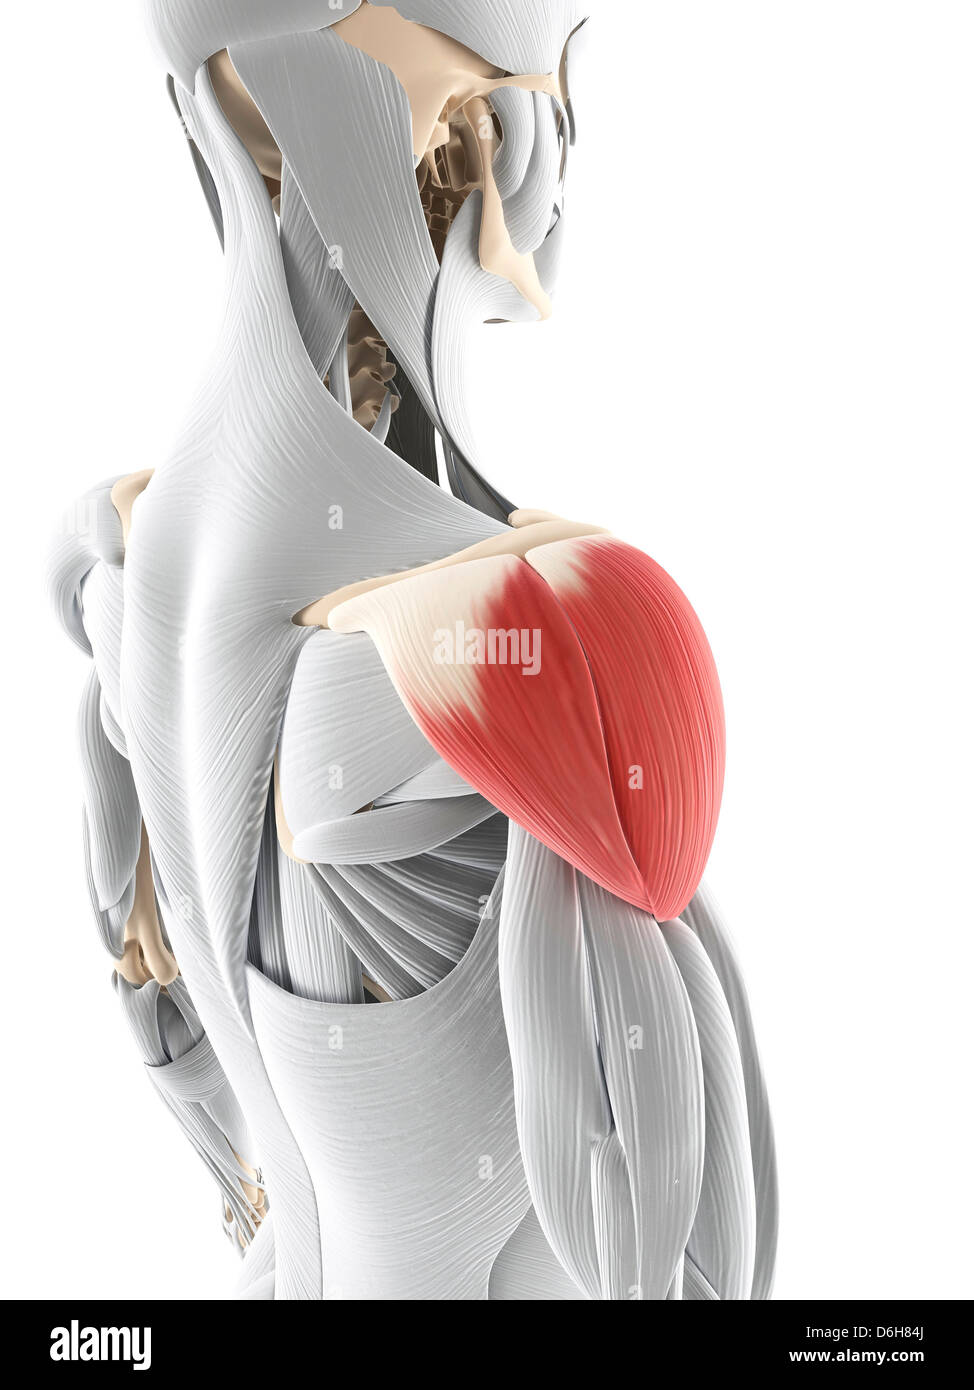 Deltoid Muscle Stock Photos & Deltoid Muscle Stock Images - Alamy